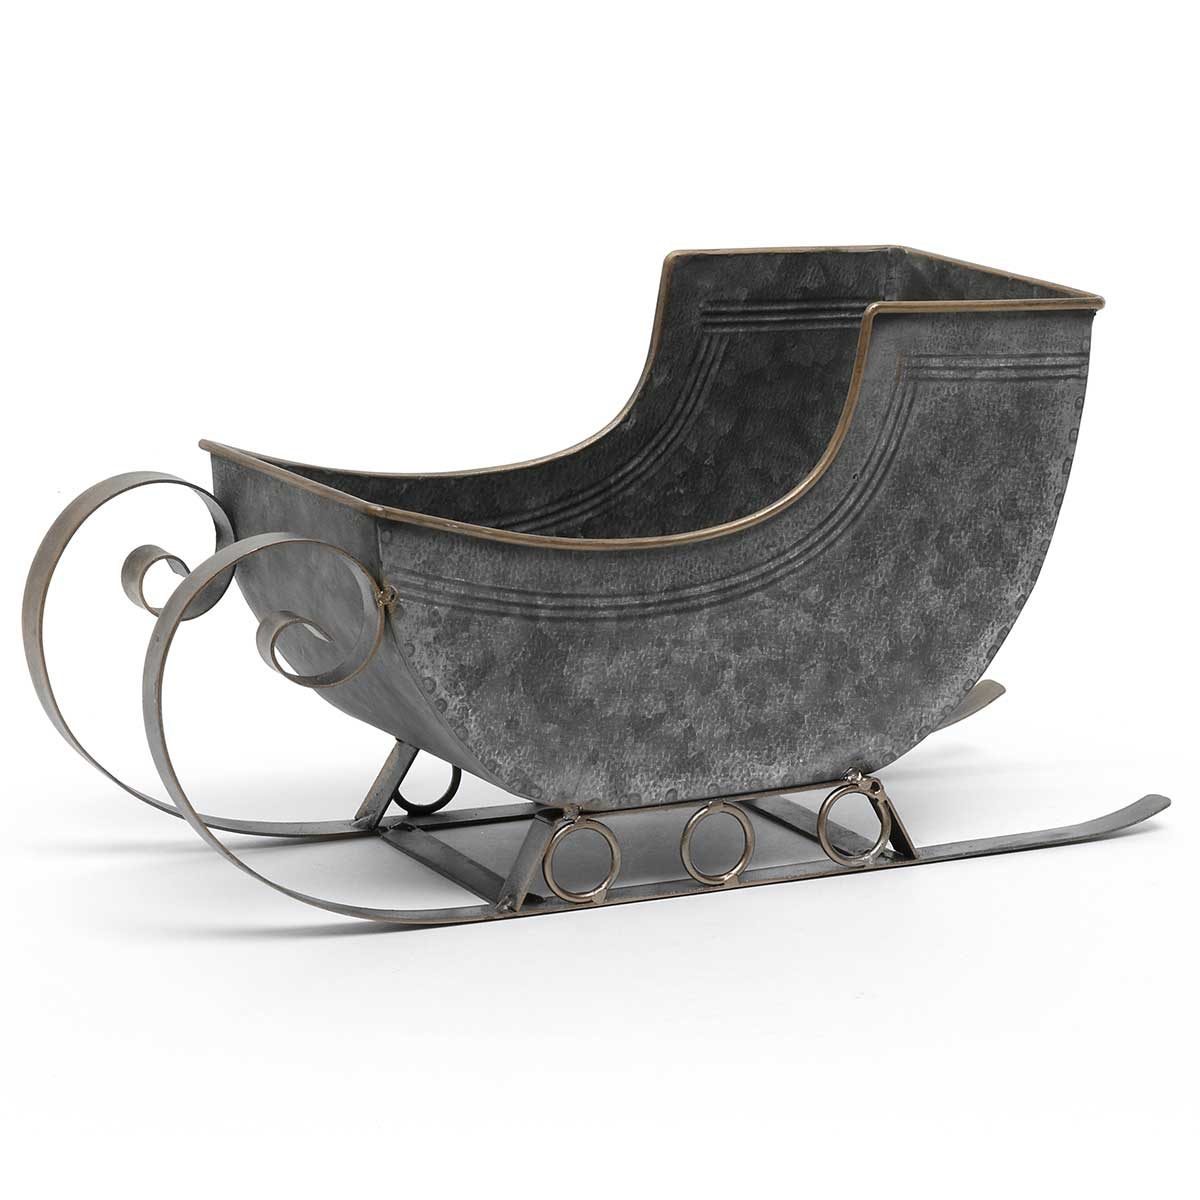 METAL SLEIGH WITH RUNNERS